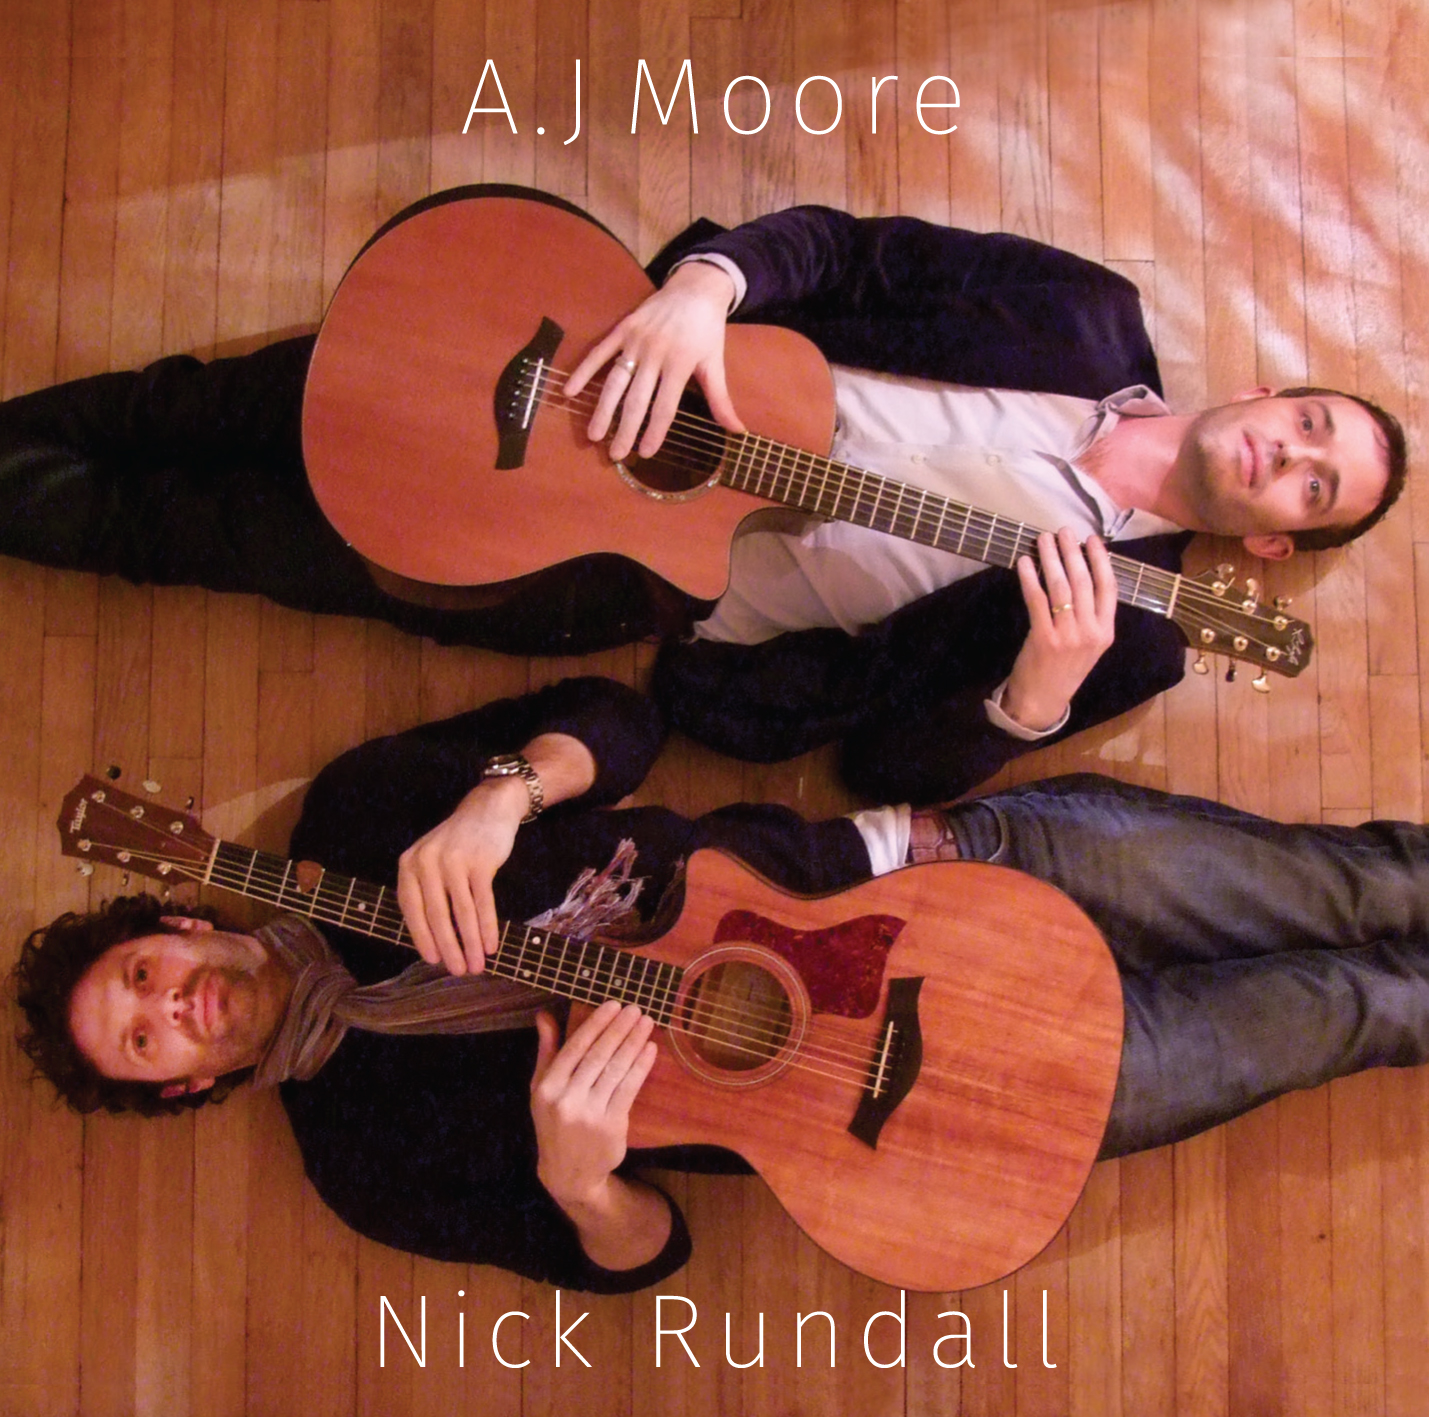 AJ_Moore_Nick_Rundall_COVER_ARTWORK_cover_only.jpg